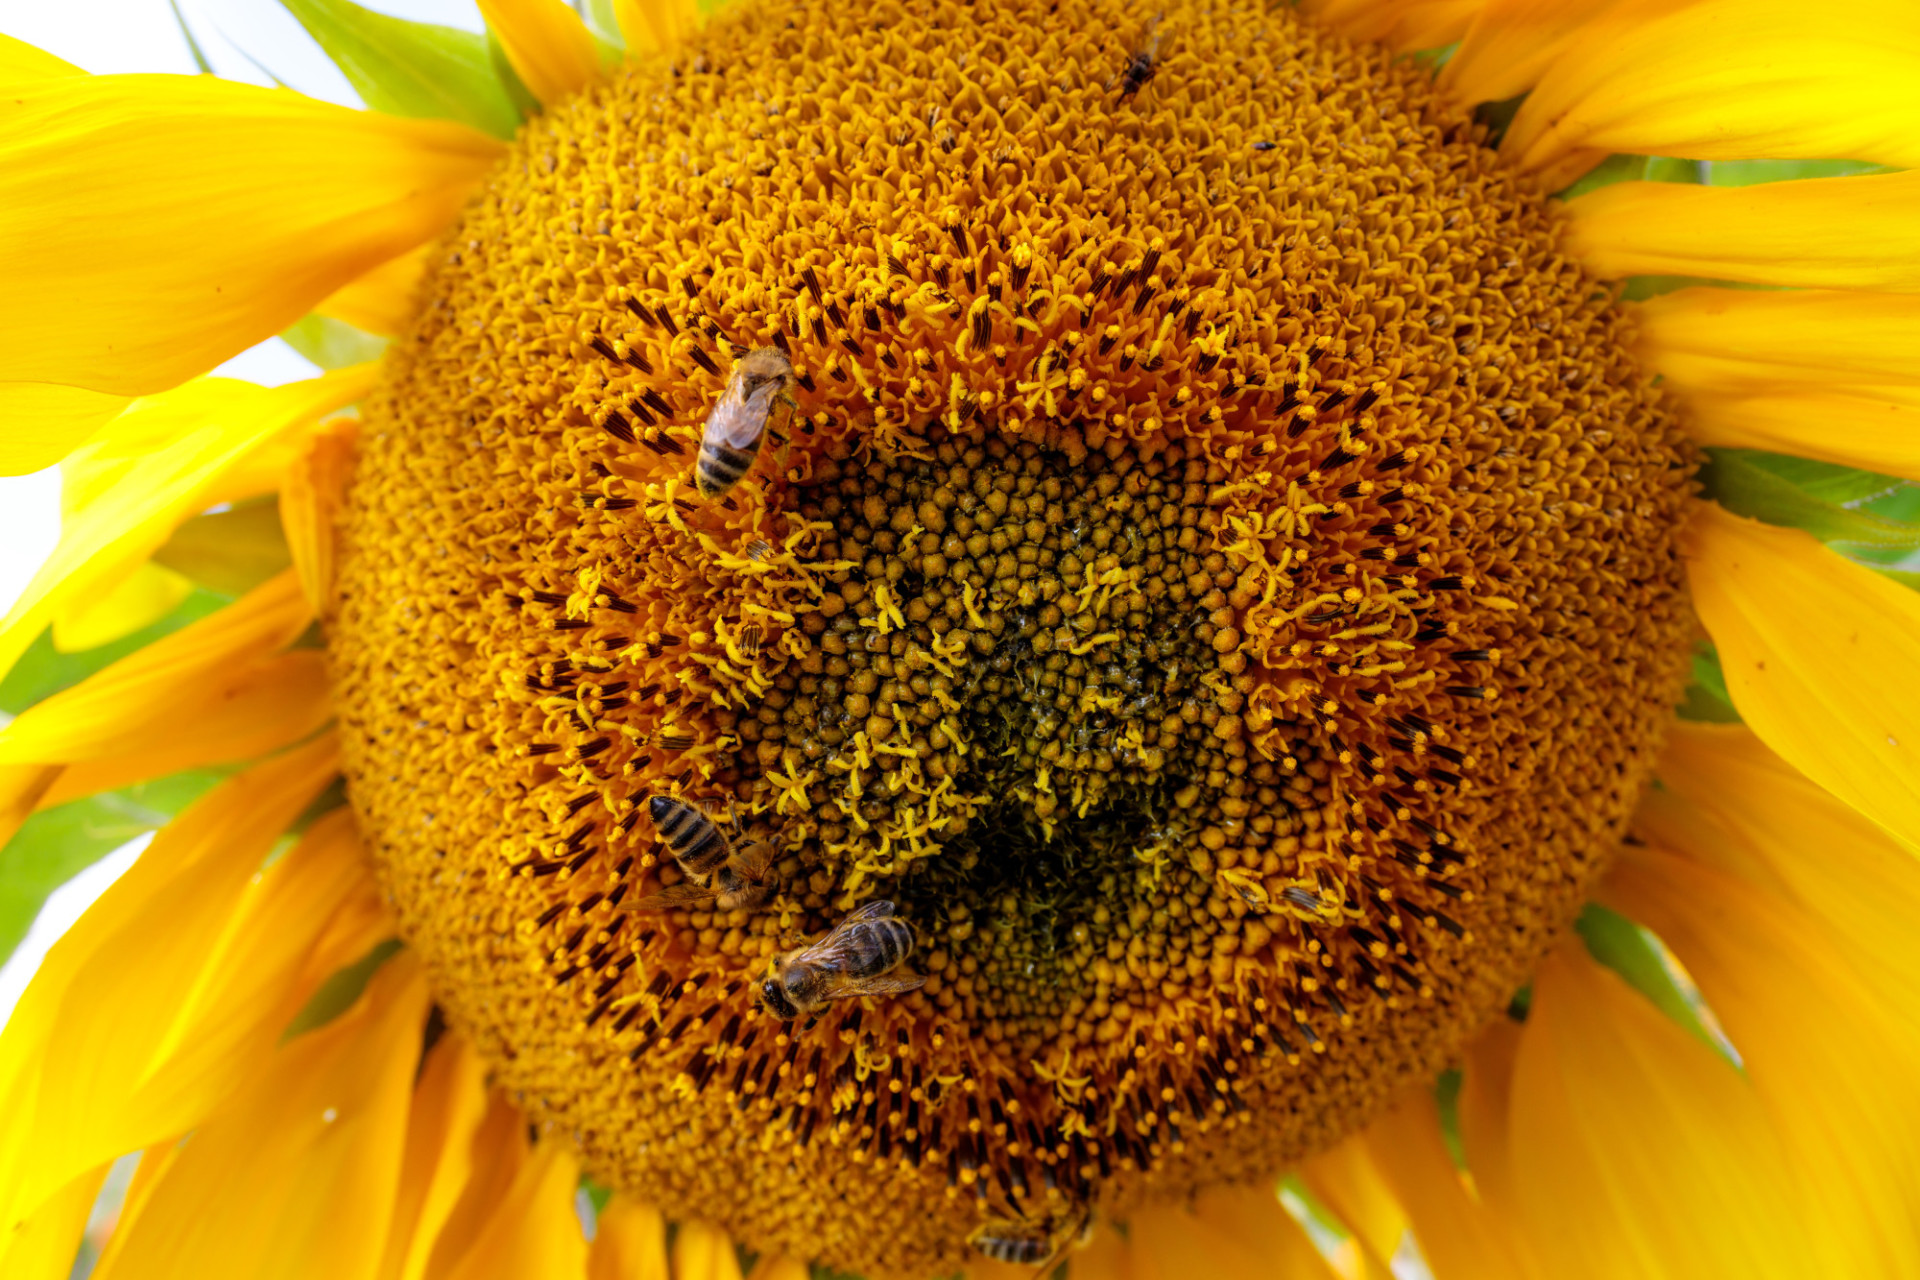 Many bees on a sunflower